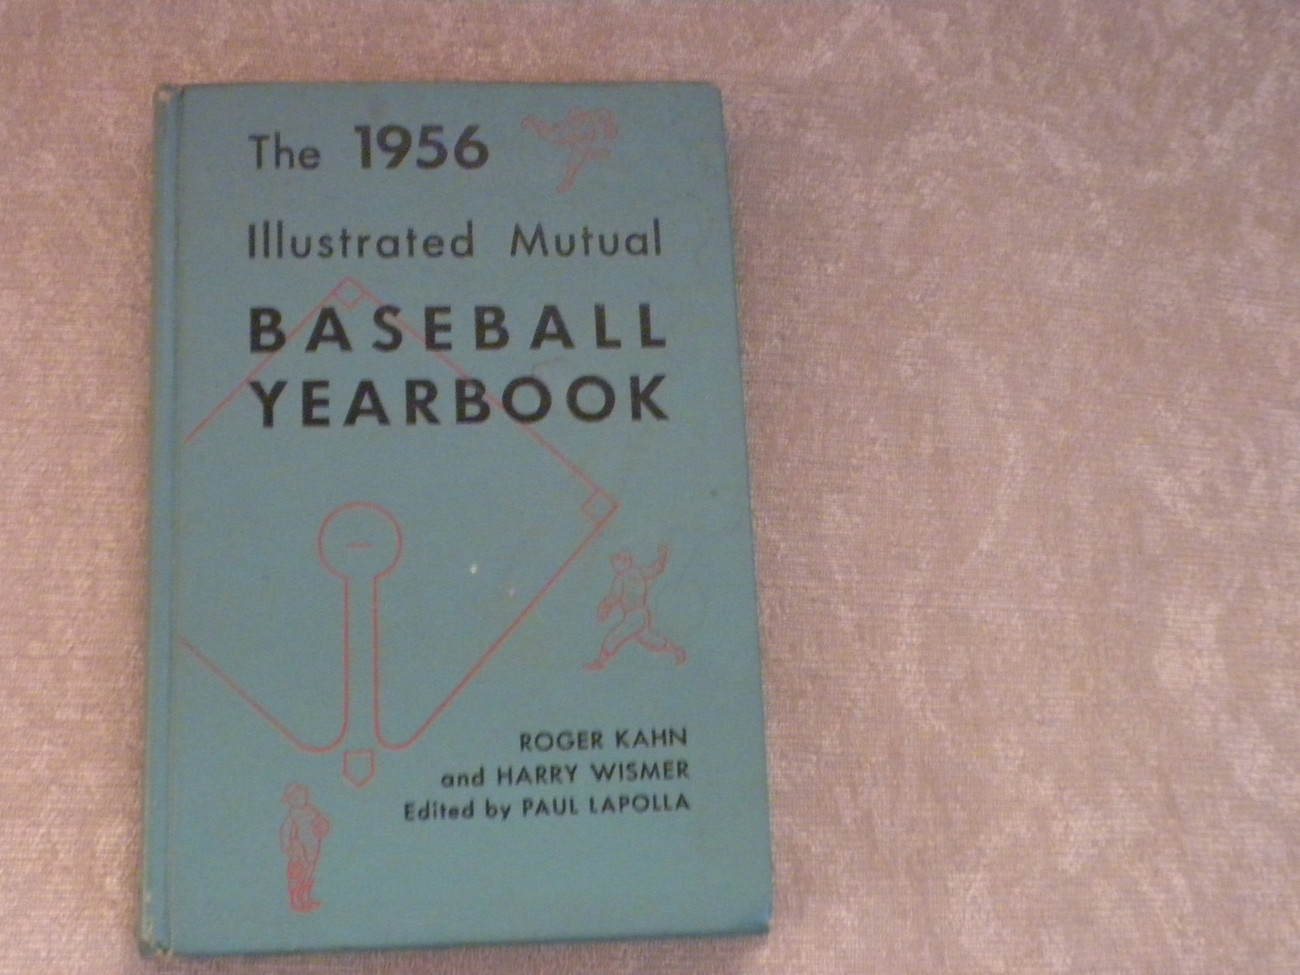 1956 Illustrated Baseball Yearbook by Roger Kahn & Harry Wismer 1st Ed Doubleday